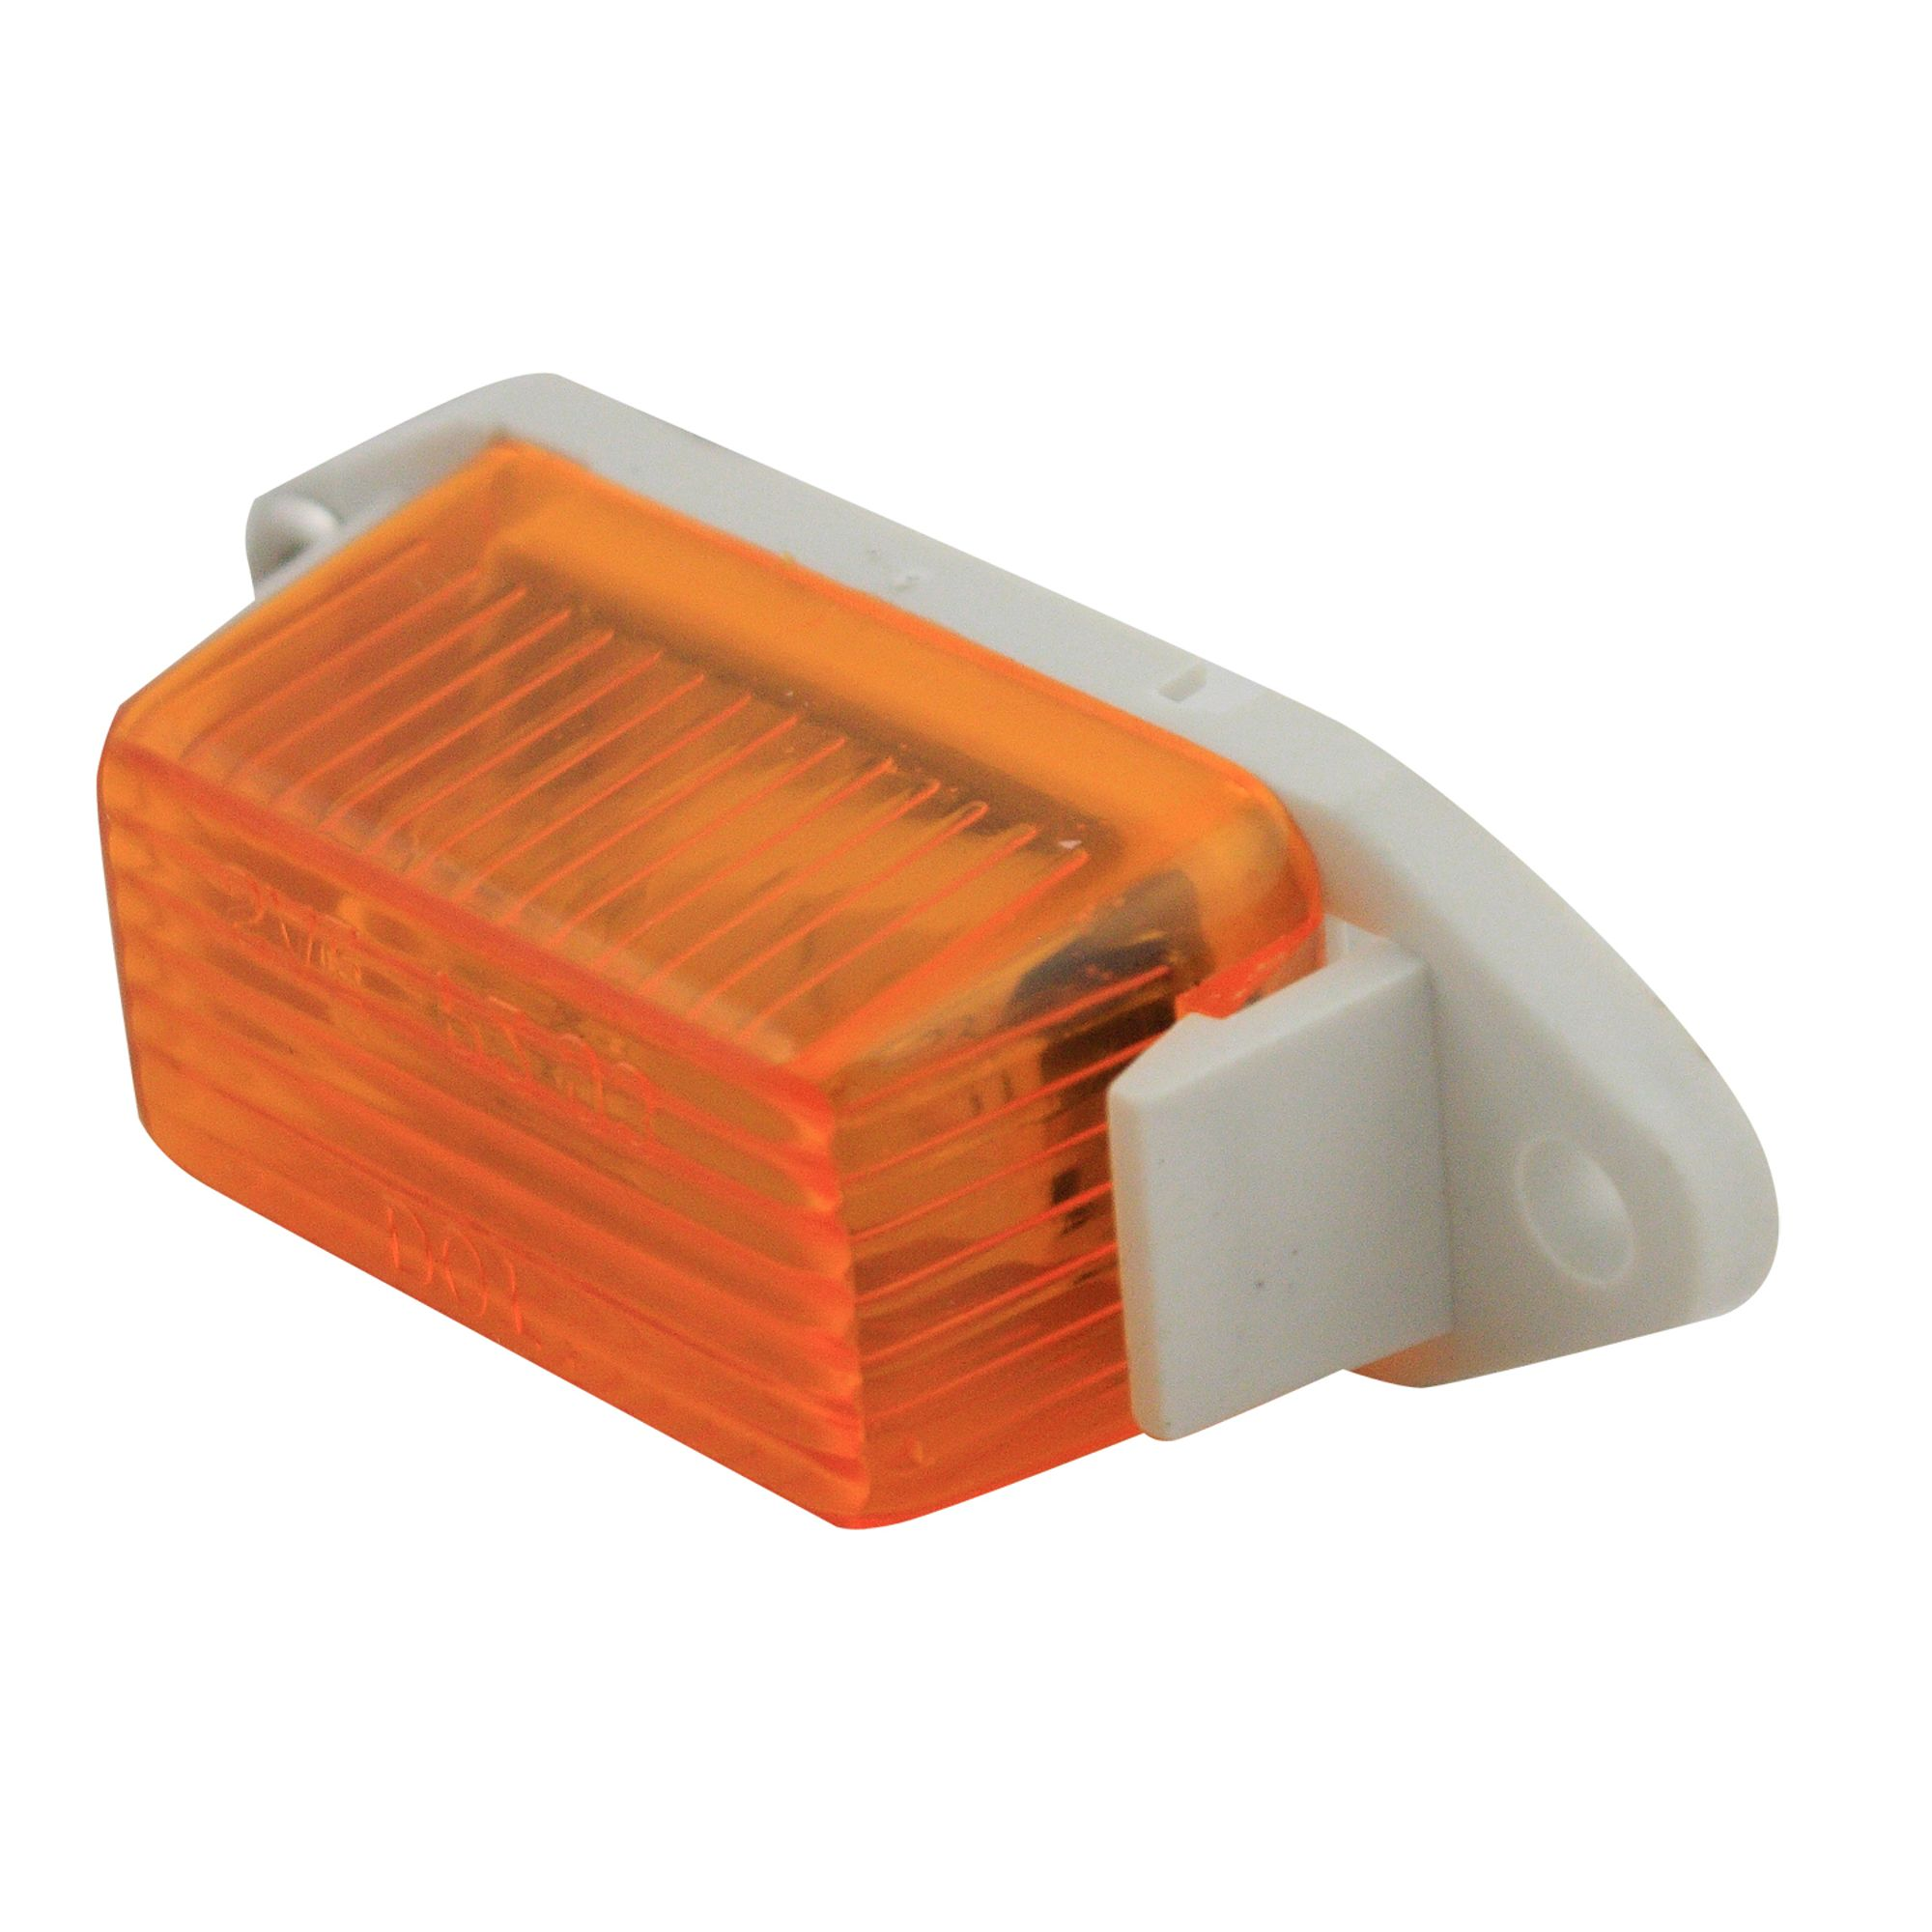 Pilot Automotive NV-5001A 12 Volt Side Marker Reflector Lights-Amber Dimensions: 6 x 2 x 2 inches